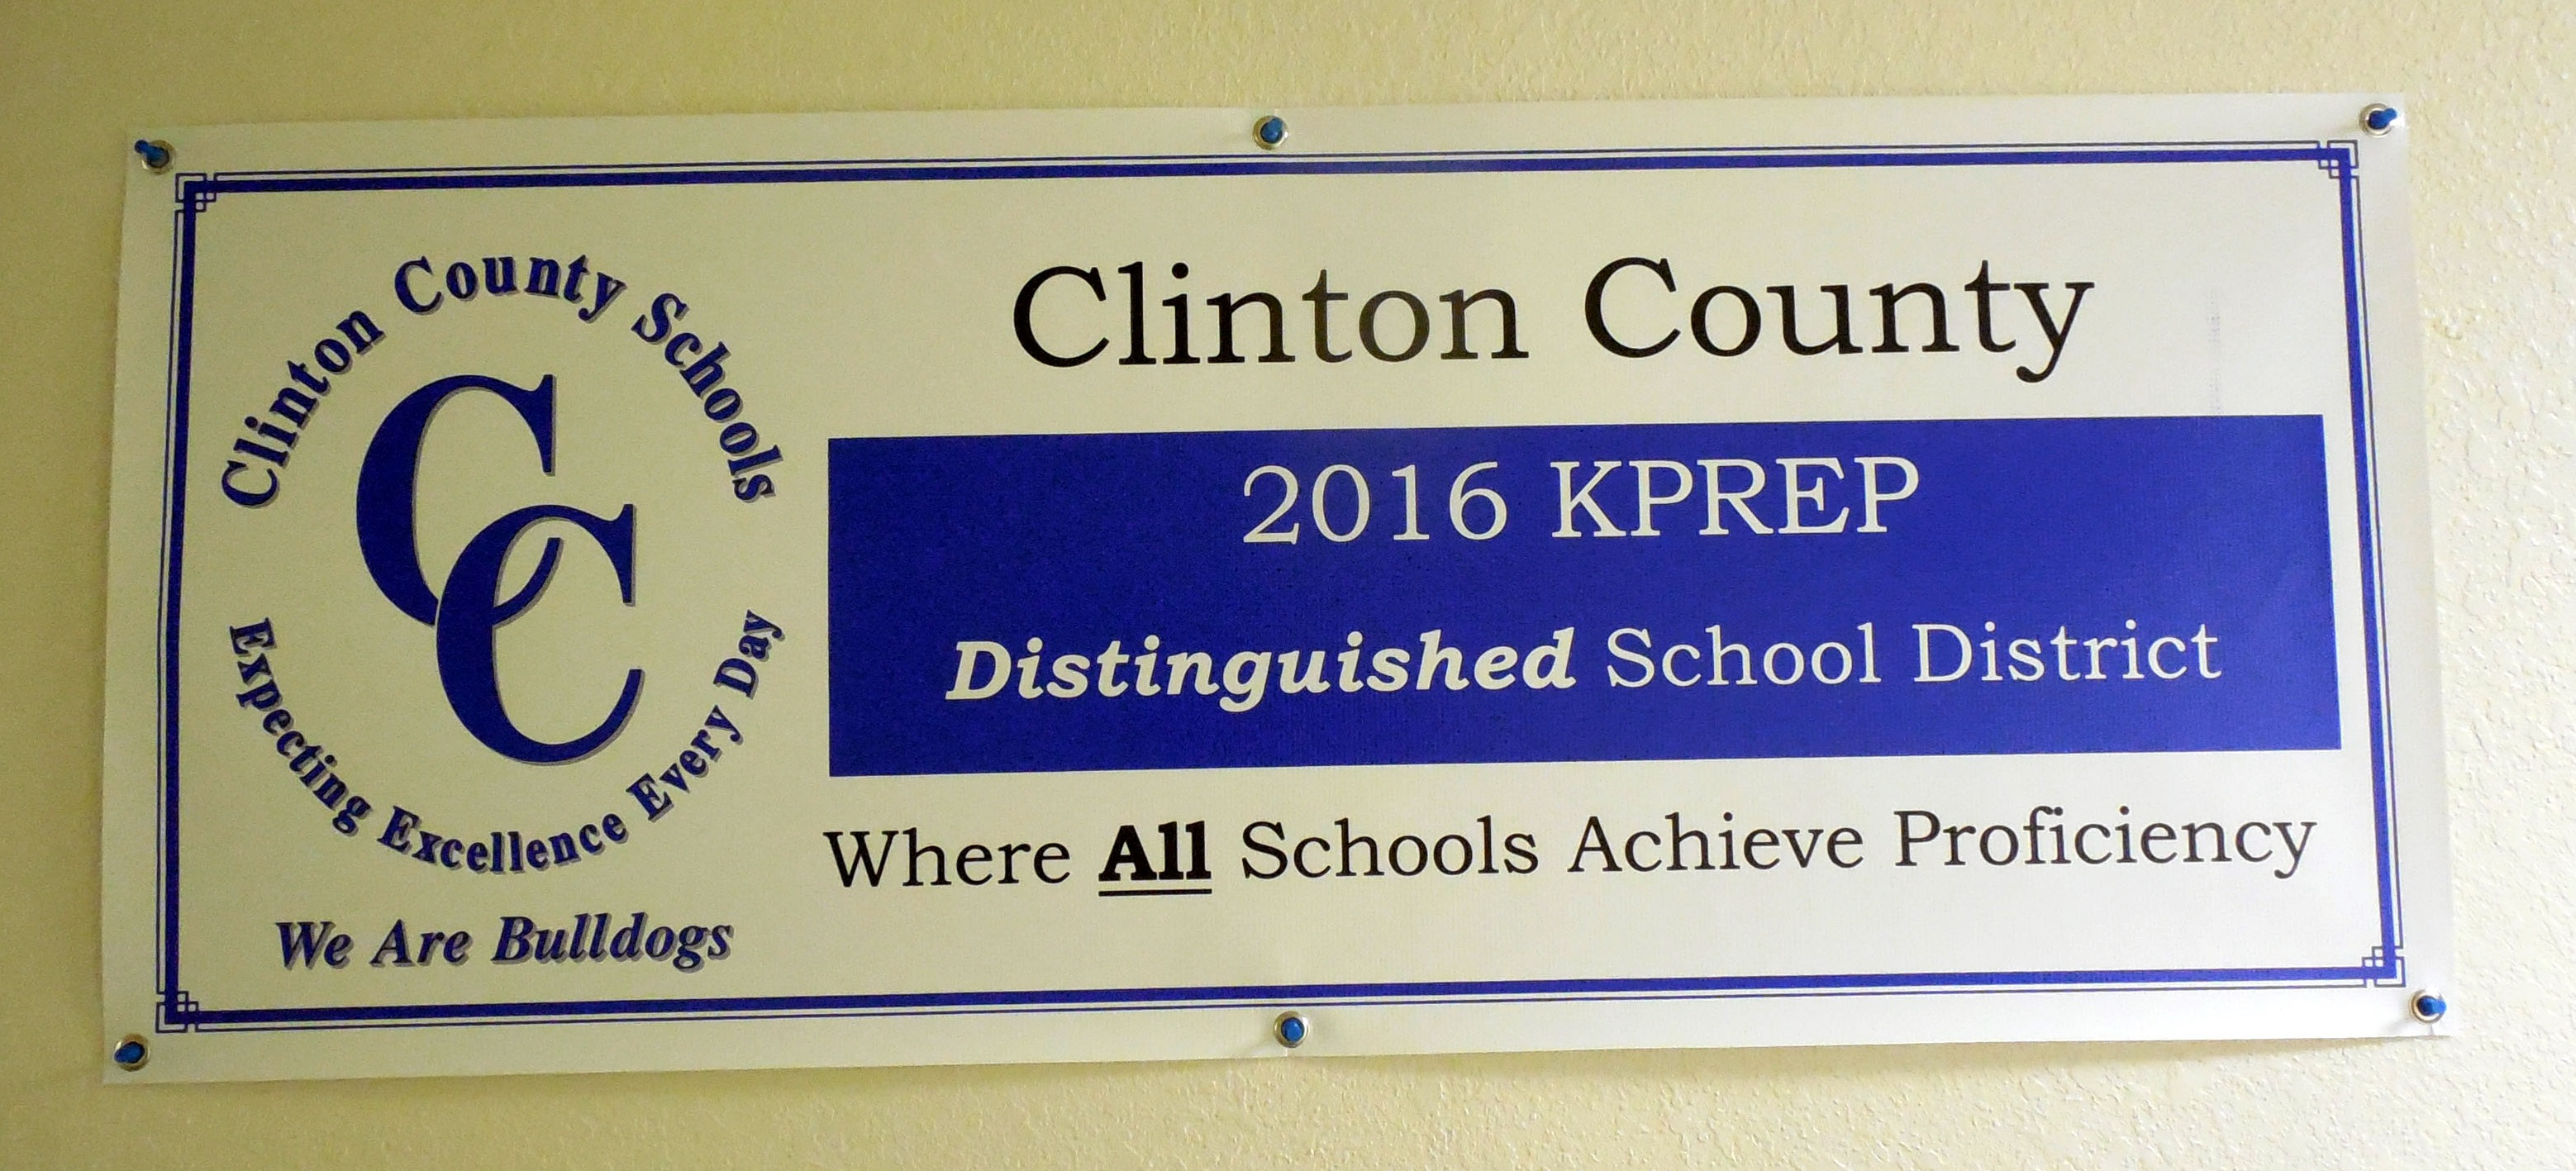 The 2016 KPREP scores have been released and the Clinton County School District has earned the classification of Distinguished.